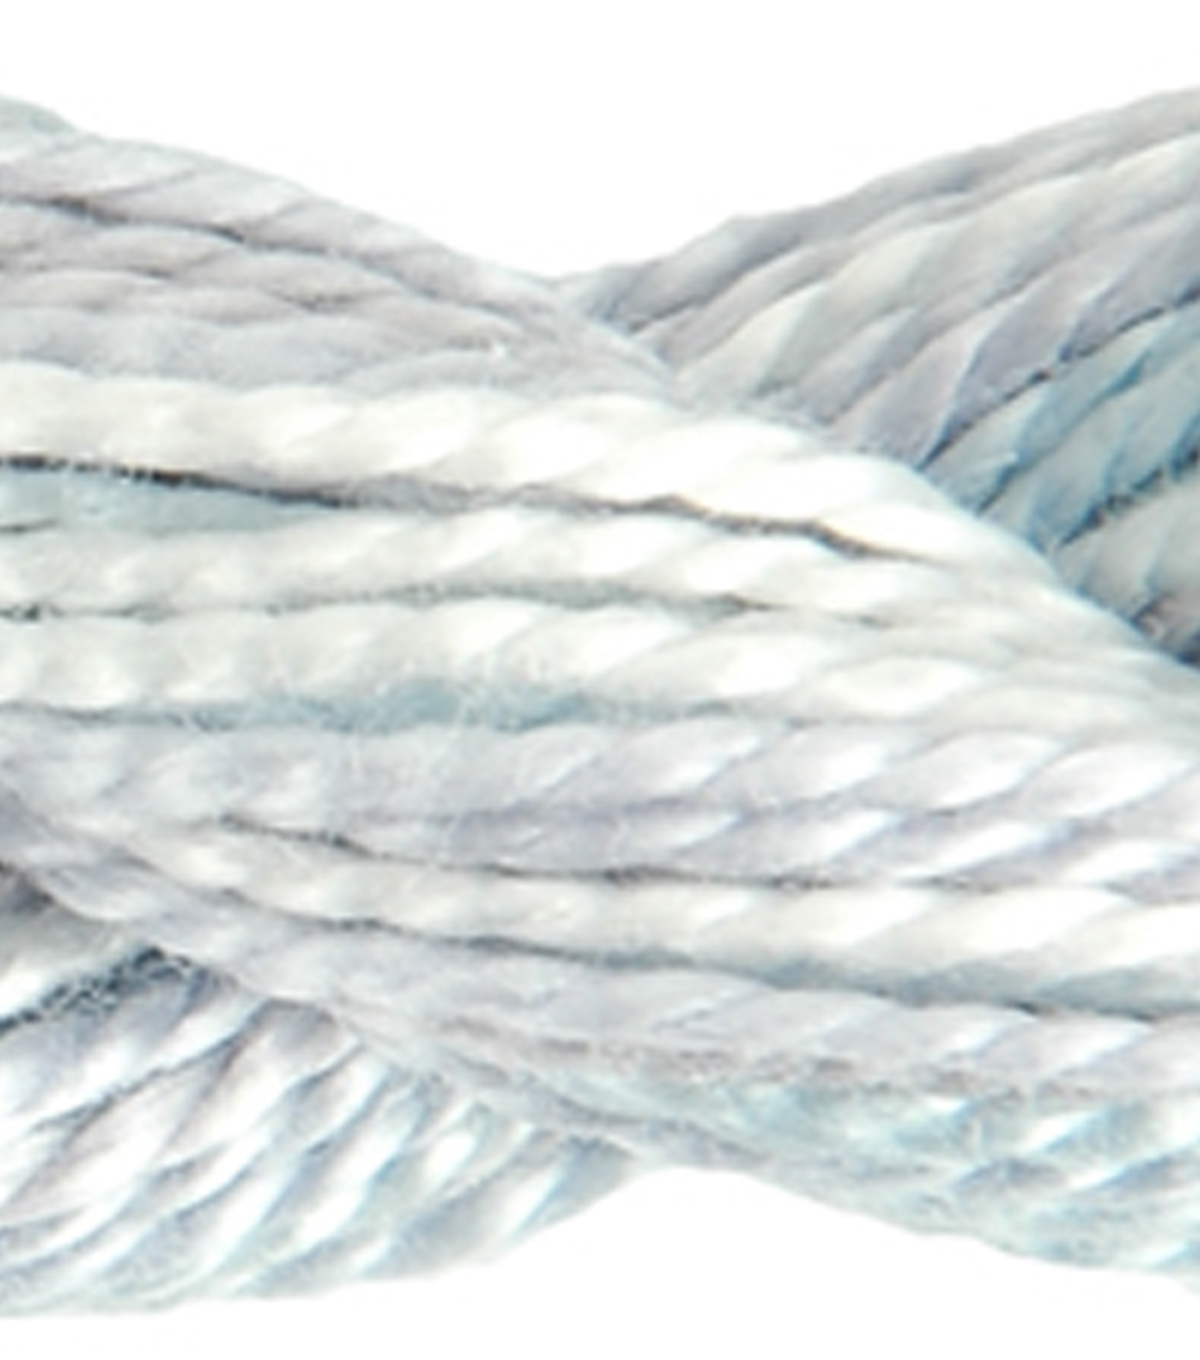 DMC Pearl Cotton Thread 27 Yds Size 5, Winter Sky